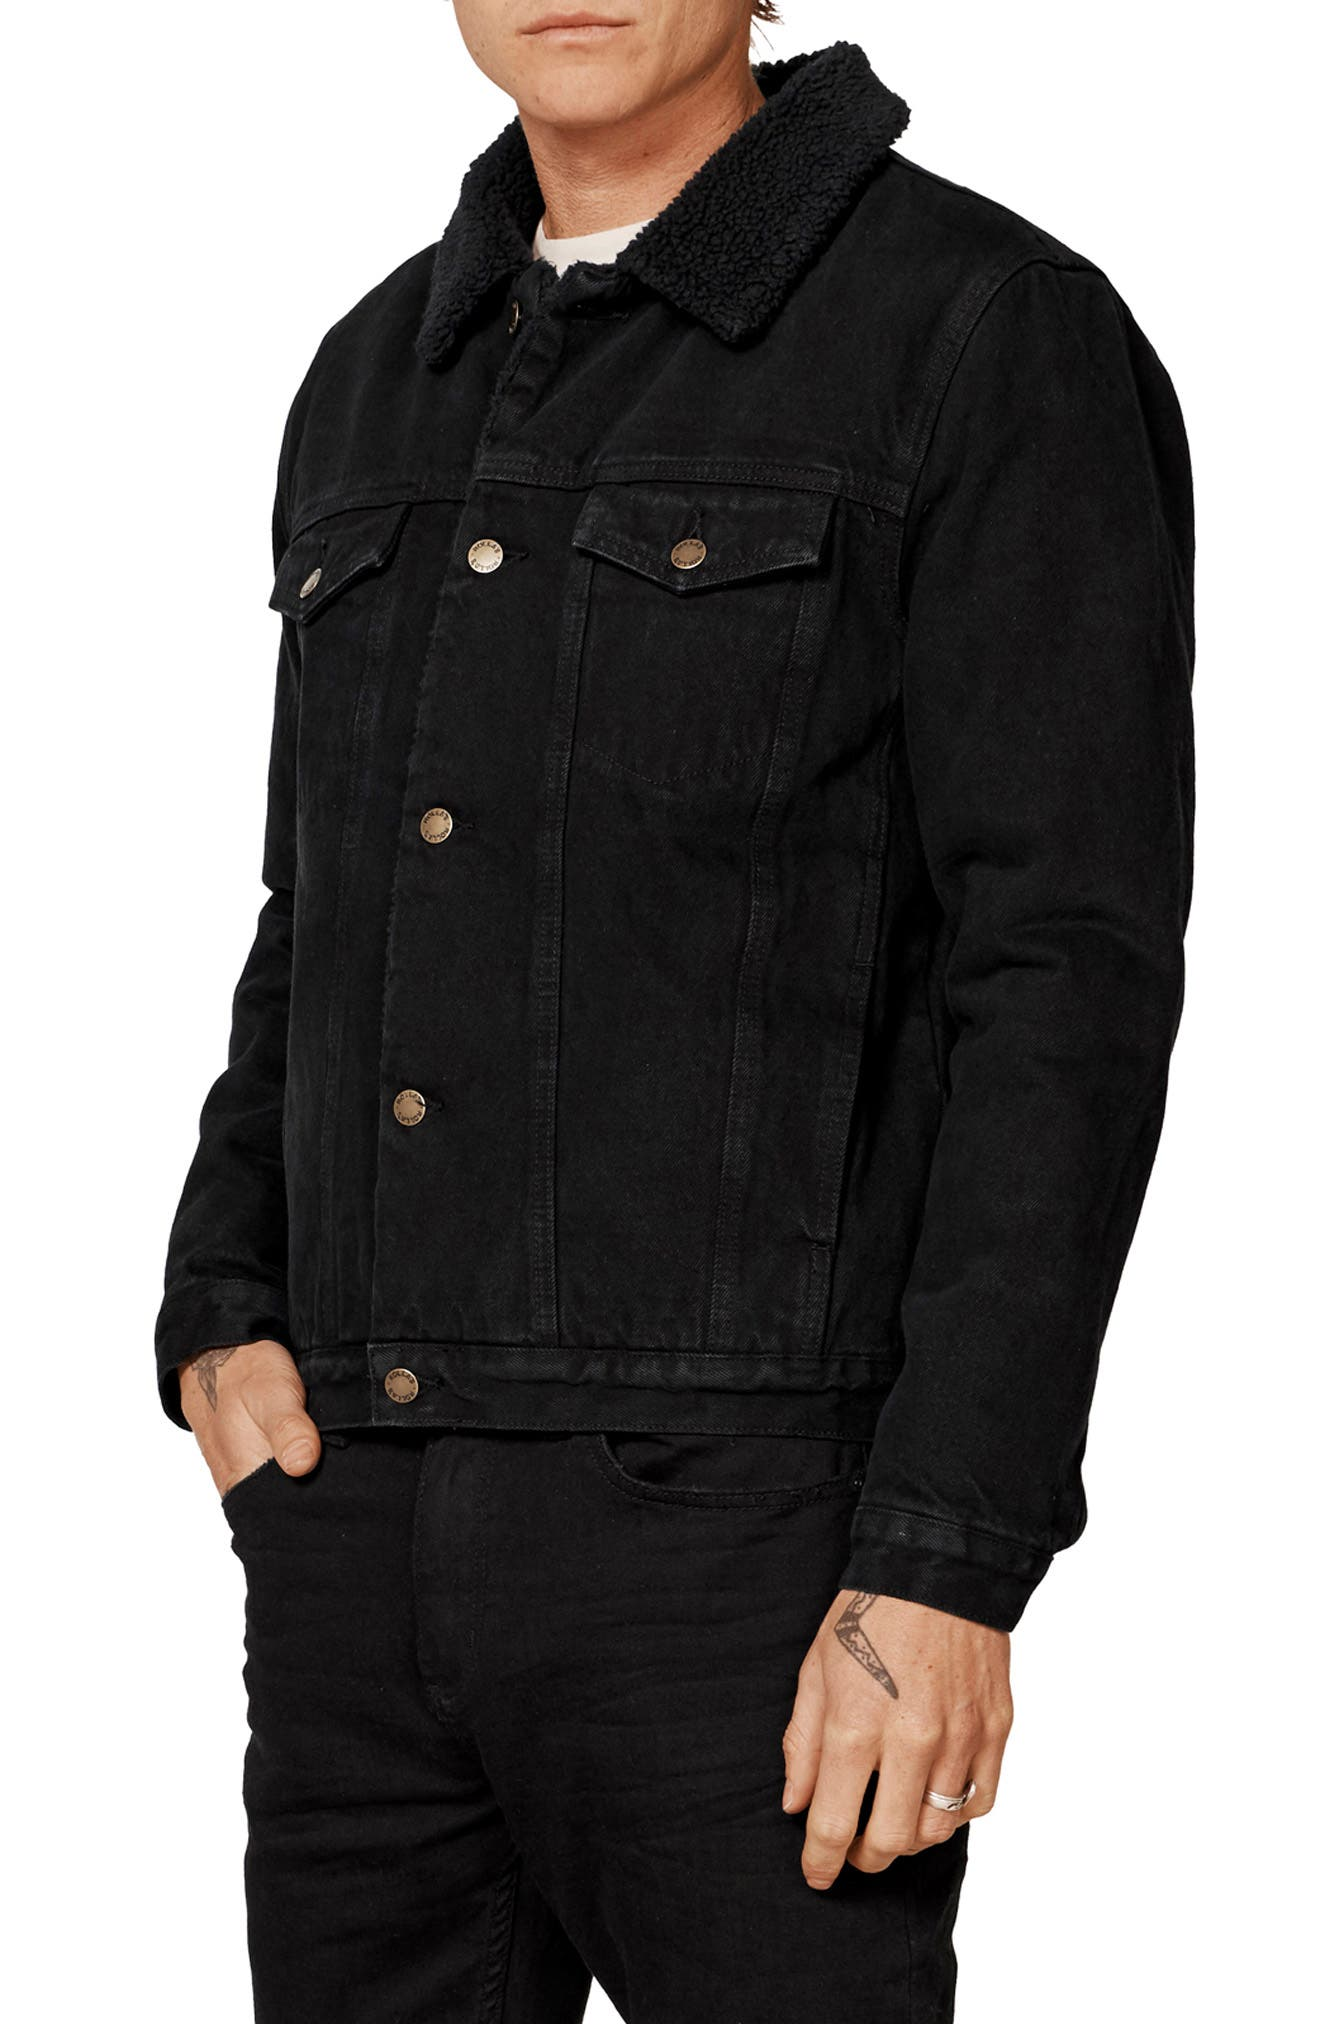 ROLLA'S,                             Lined Denim Jacket,                             Alternate thumbnail 3, color,                             002